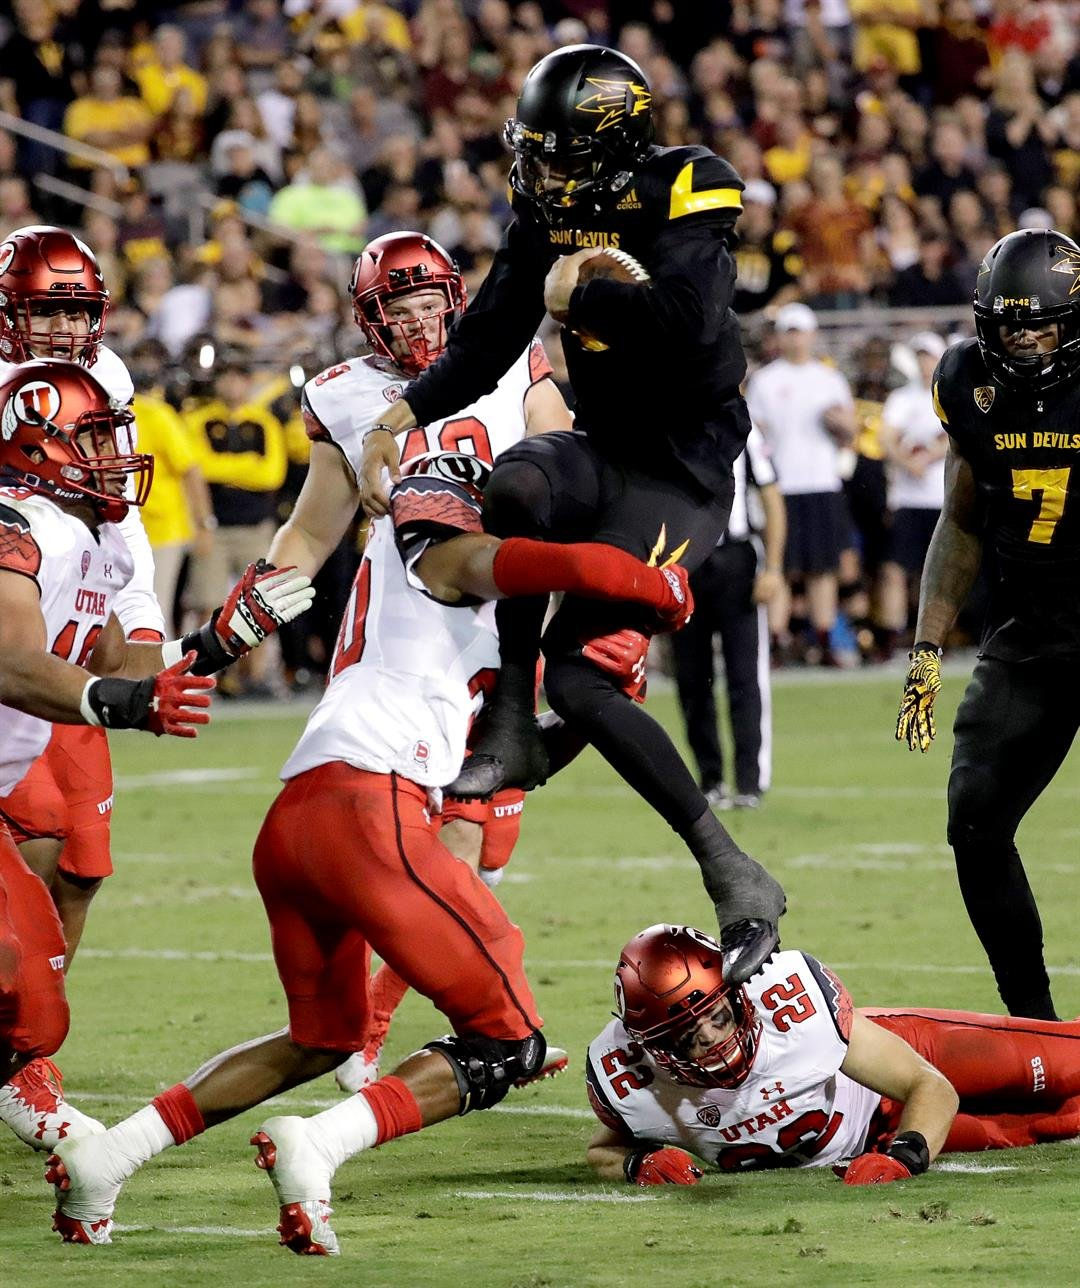 Arizona State quarterback Manny Wilkins is stopped short of the goal line by Utah defensive back Marcus Williams (20) during the first half of an NCAA college football game, Thursday, Nov. 10, 2016, in Tempe, Ariz. (AP Photo/Matt York)